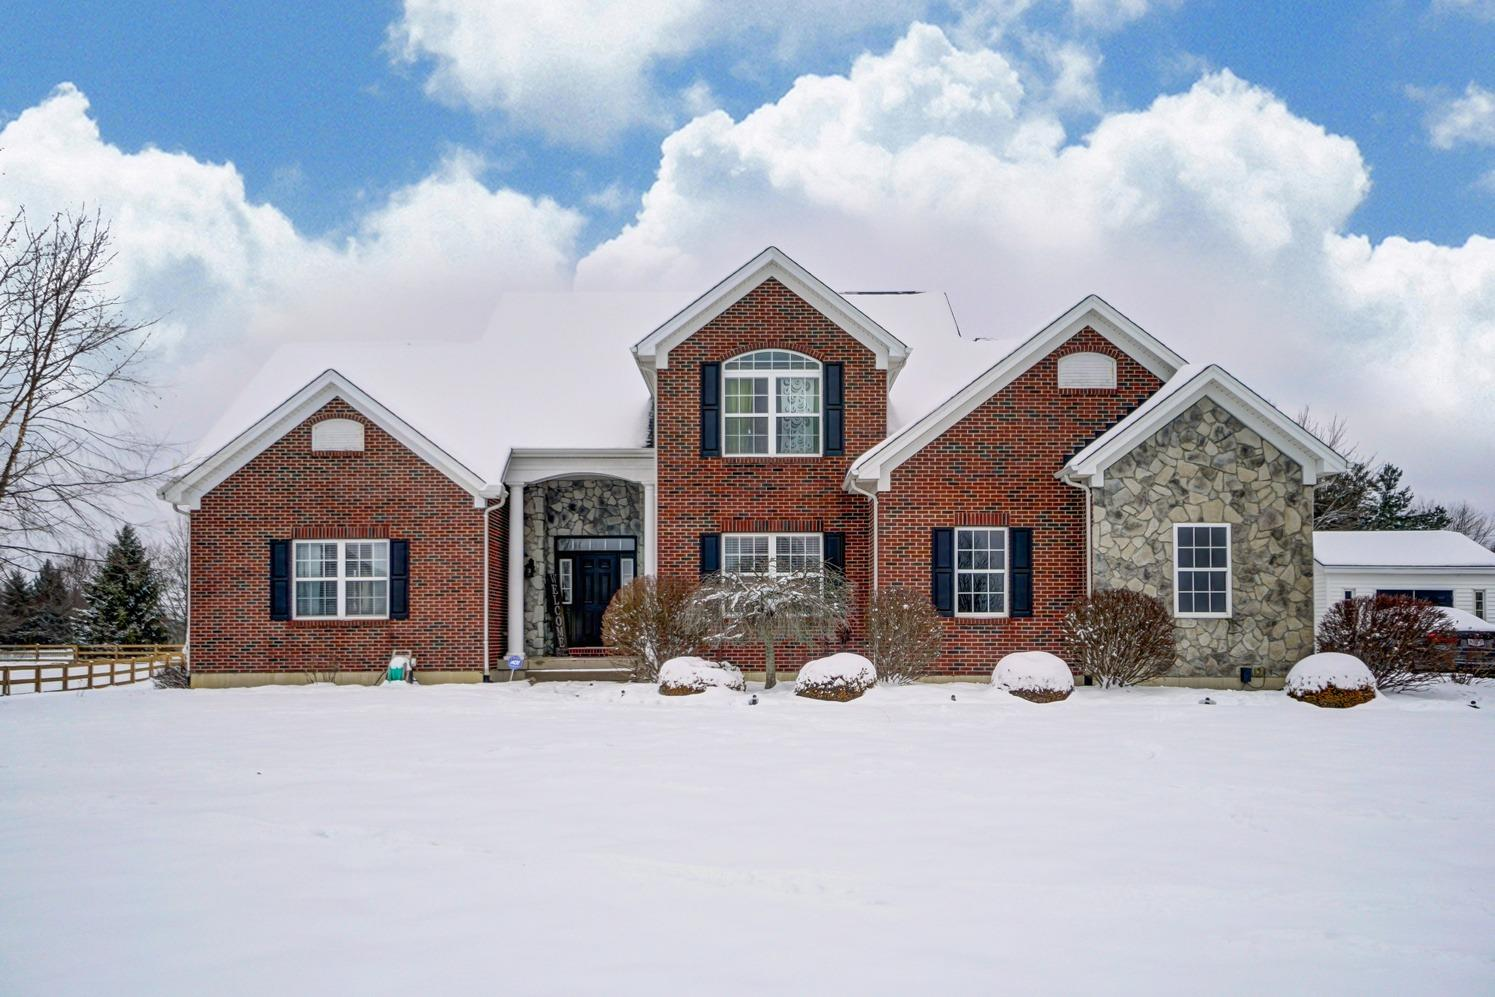 Property for sale at 2412 Columbine Court, Turtle Creek Twp,  OH 45036